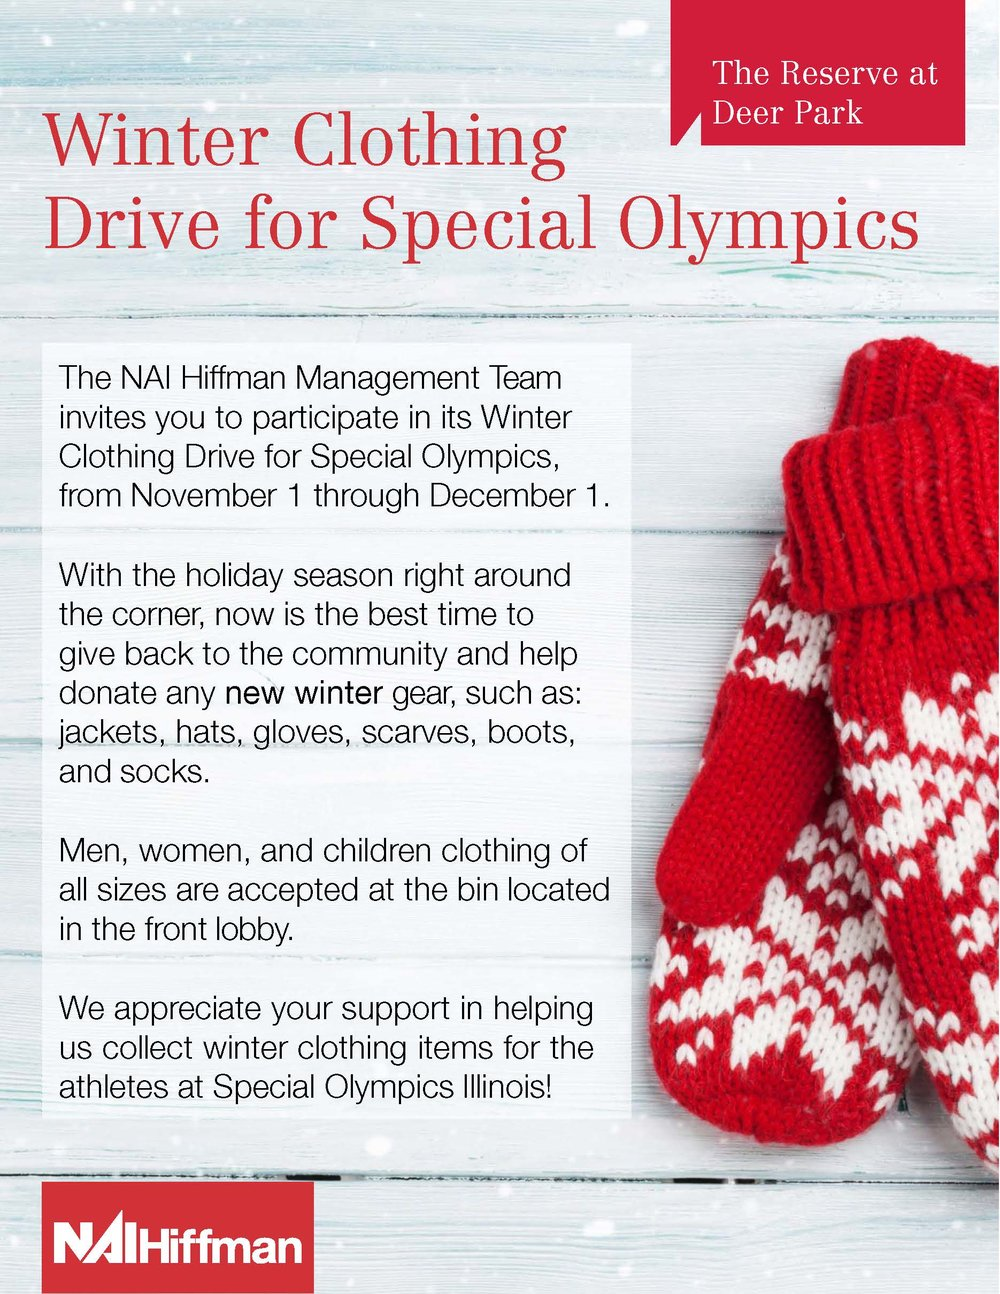 Winter Clothing Drive for Special Olympics.jpg